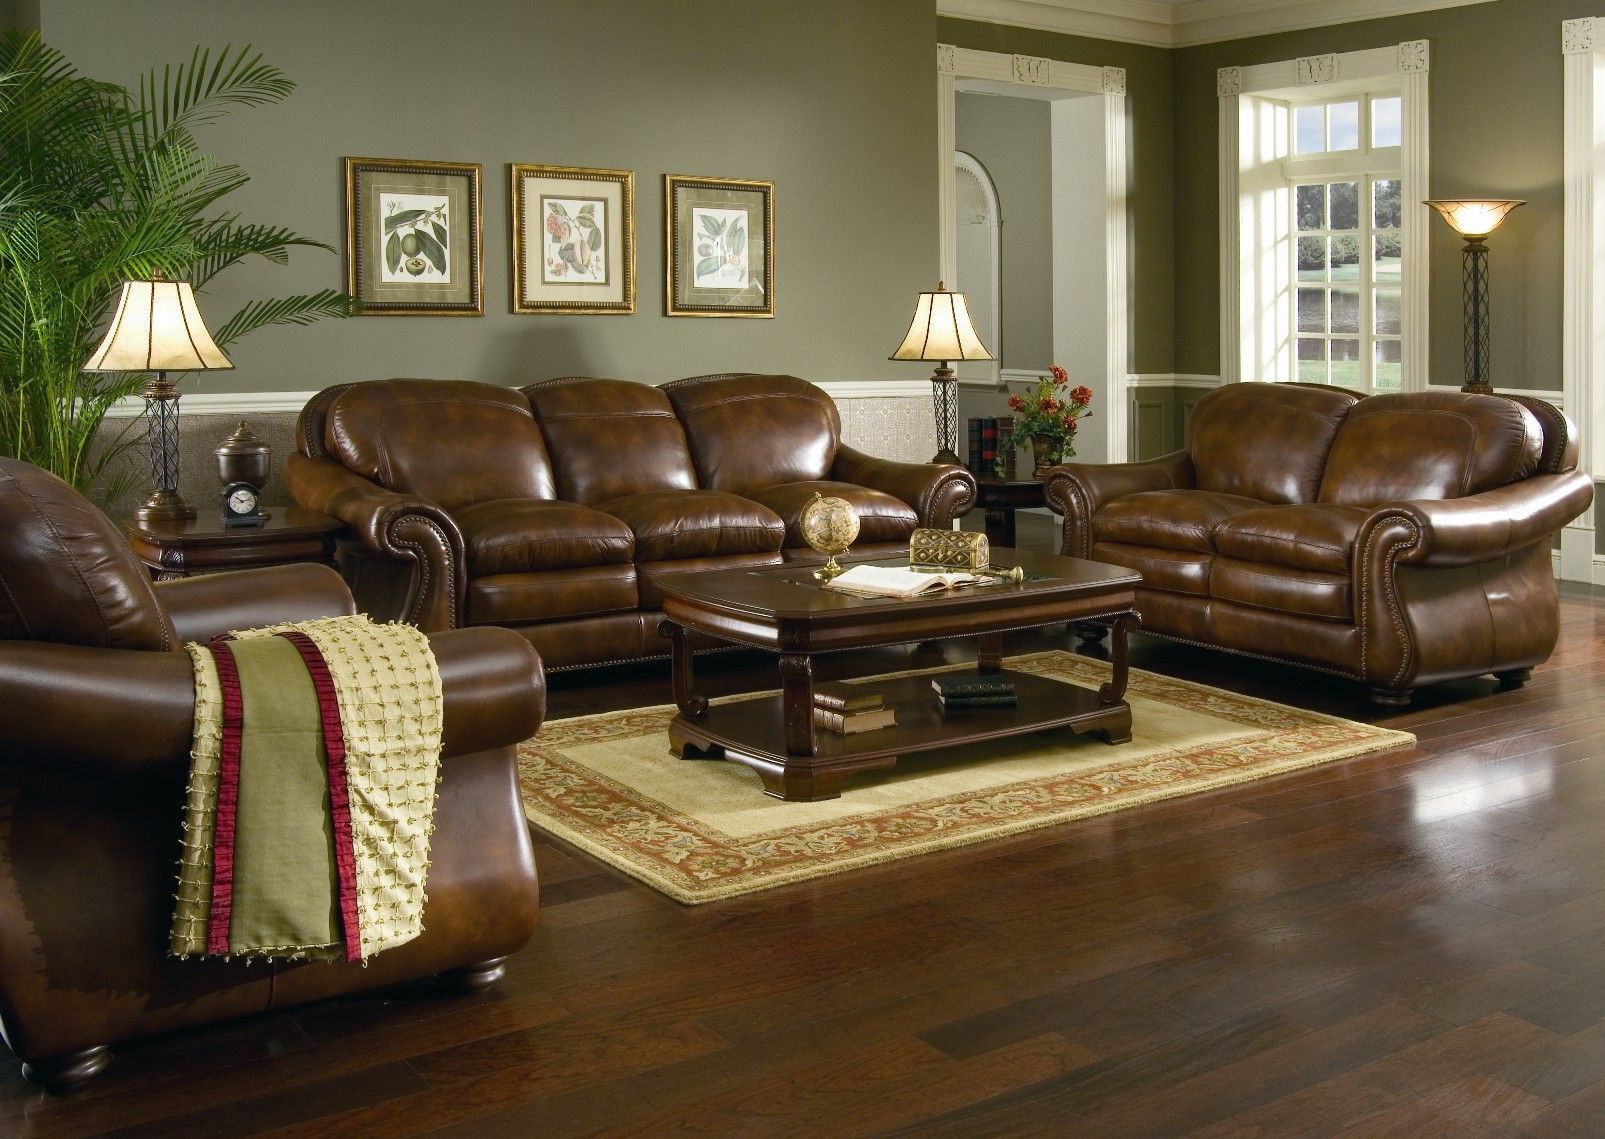 Permalink to Example Of To Get Living Room With Brown Leather Couch Ideas Picture